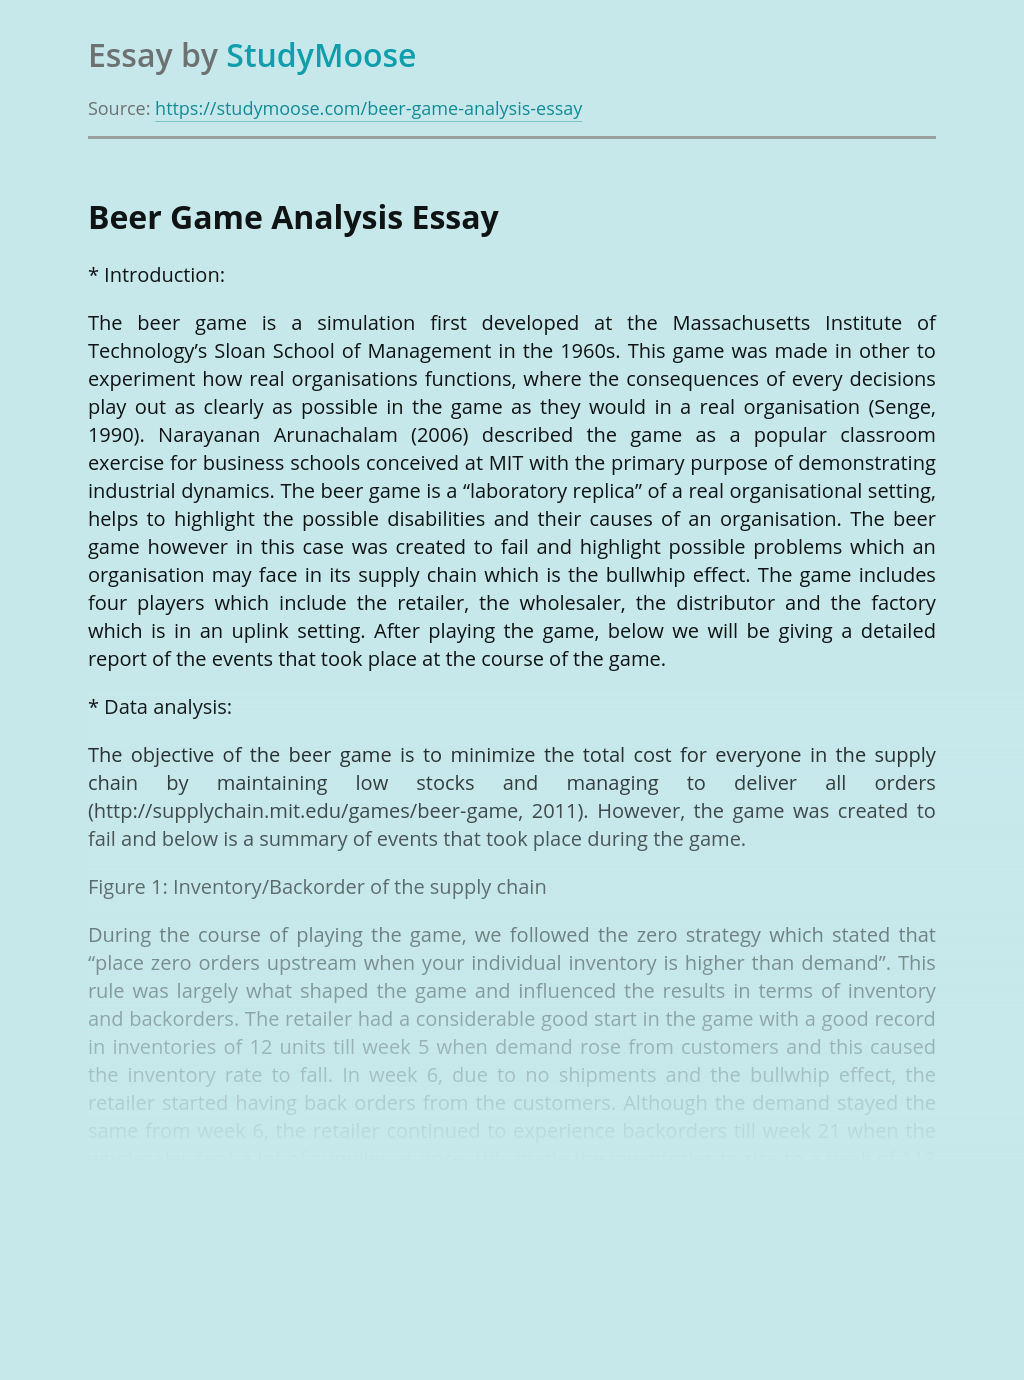 Analysis of Beer Game Management Strategy